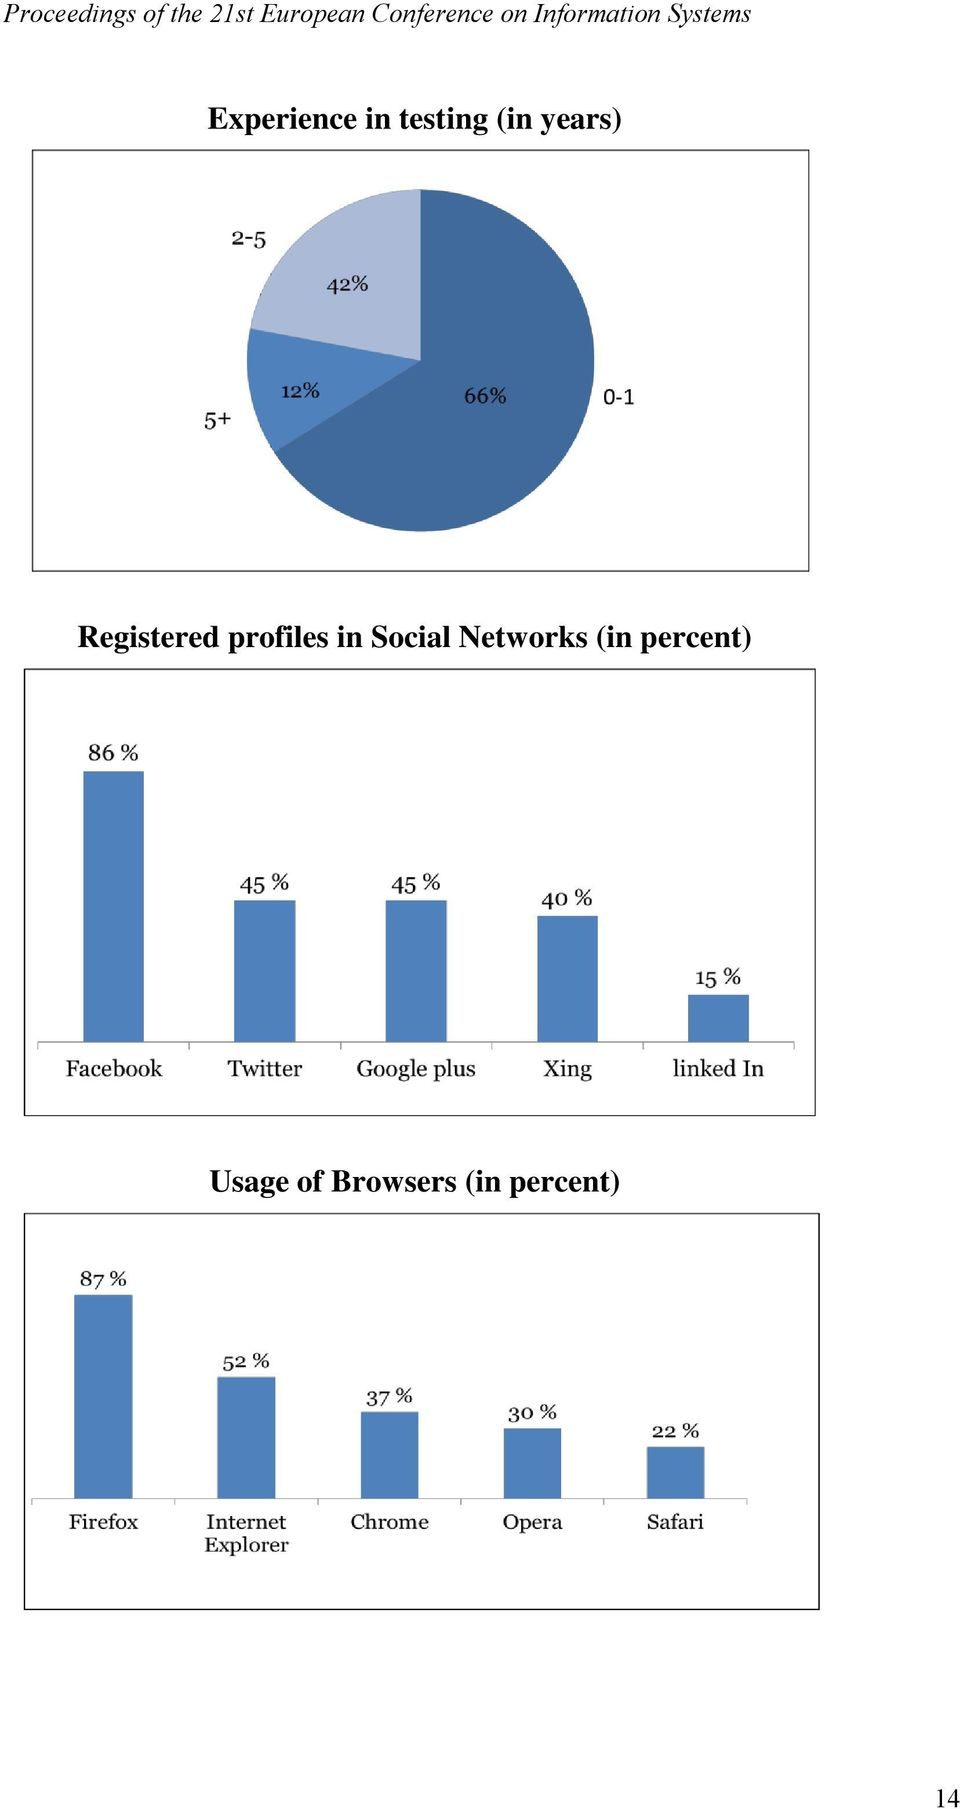 Social Networks (in percent)